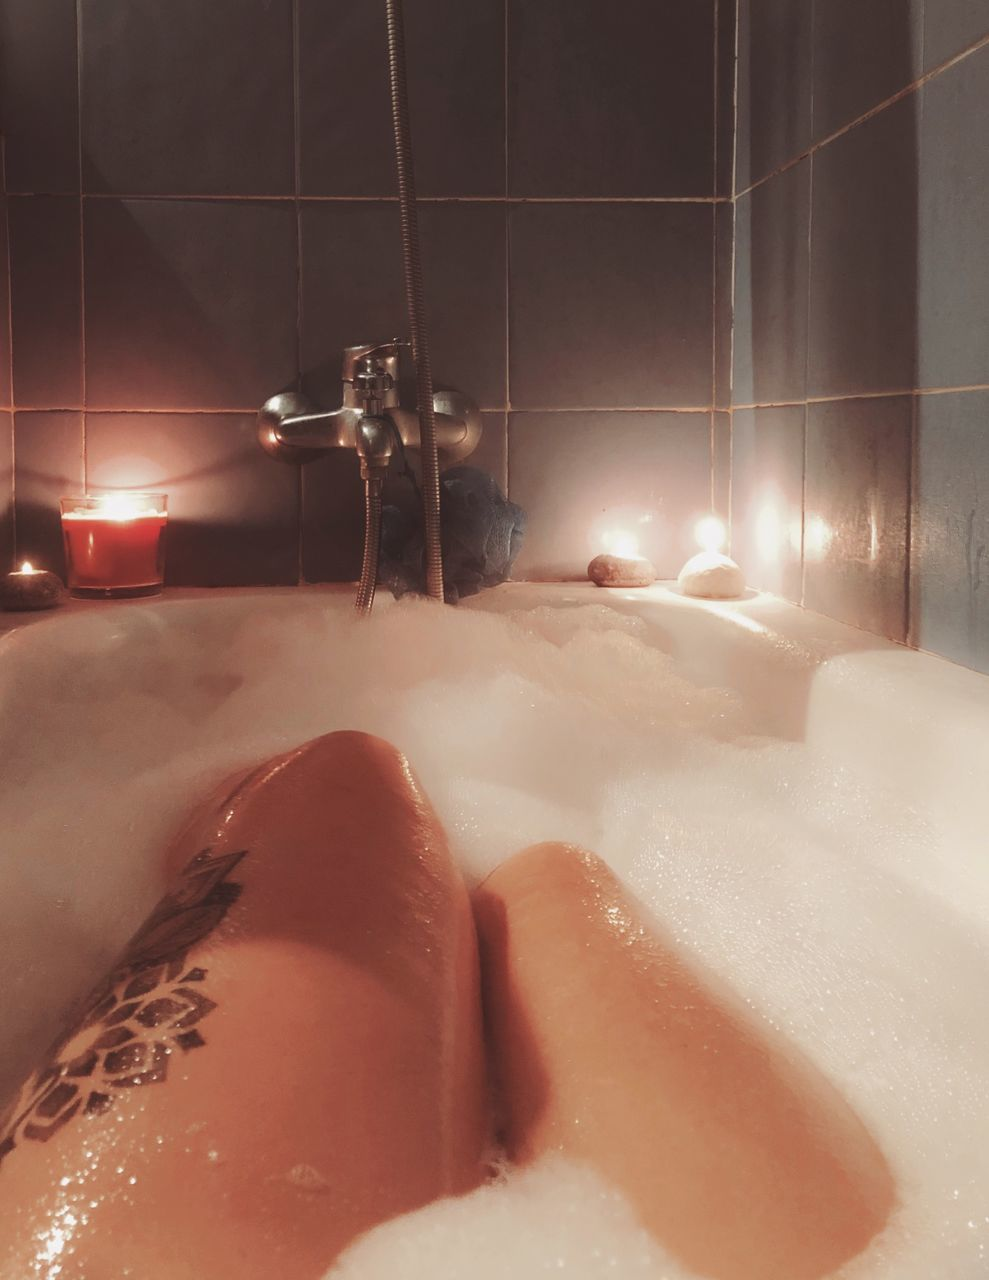 bathroom, domestic bathroom, bathtub, domestic room, human body part, taking a bath, home, indoors, hygiene, body part, wet, nature, bubble bath, low section, one person, relaxation, soap sud, lifestyles, body care, luxury, human foot